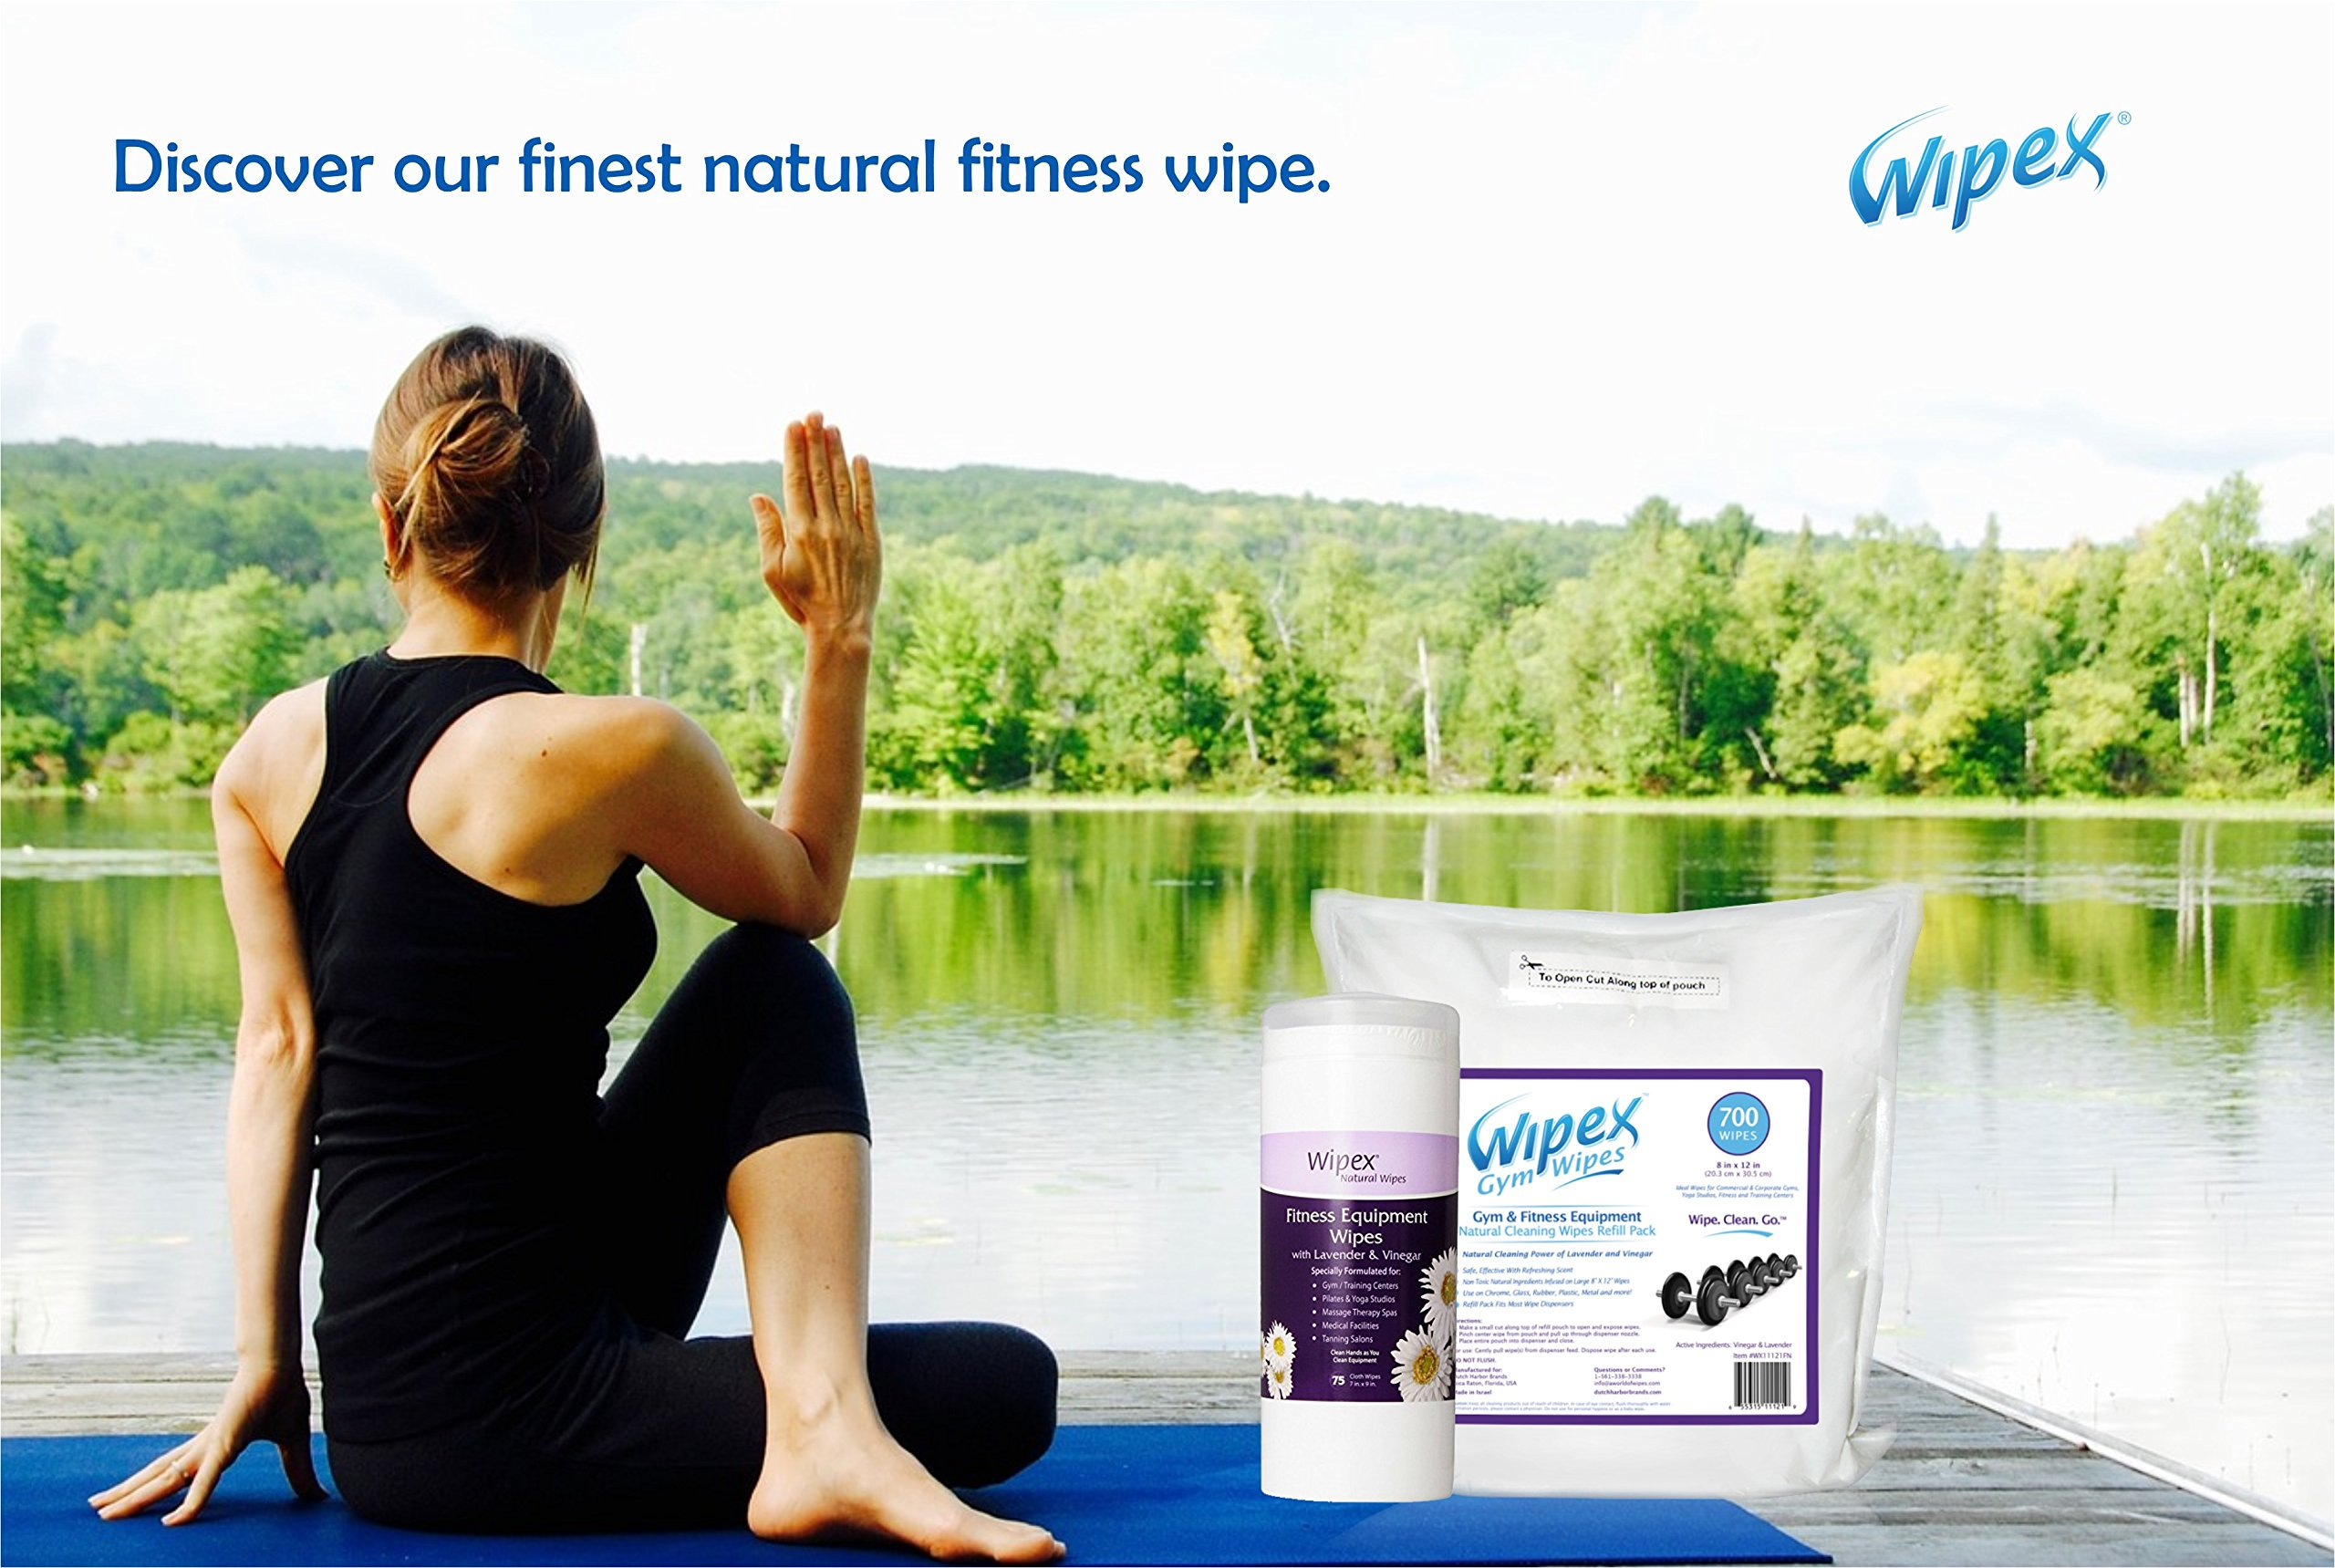 Wipex Gym & Fitness Wipes Refill Pack, 700 Large Natural Wipes Infused with Vinegar & Lavender (4)